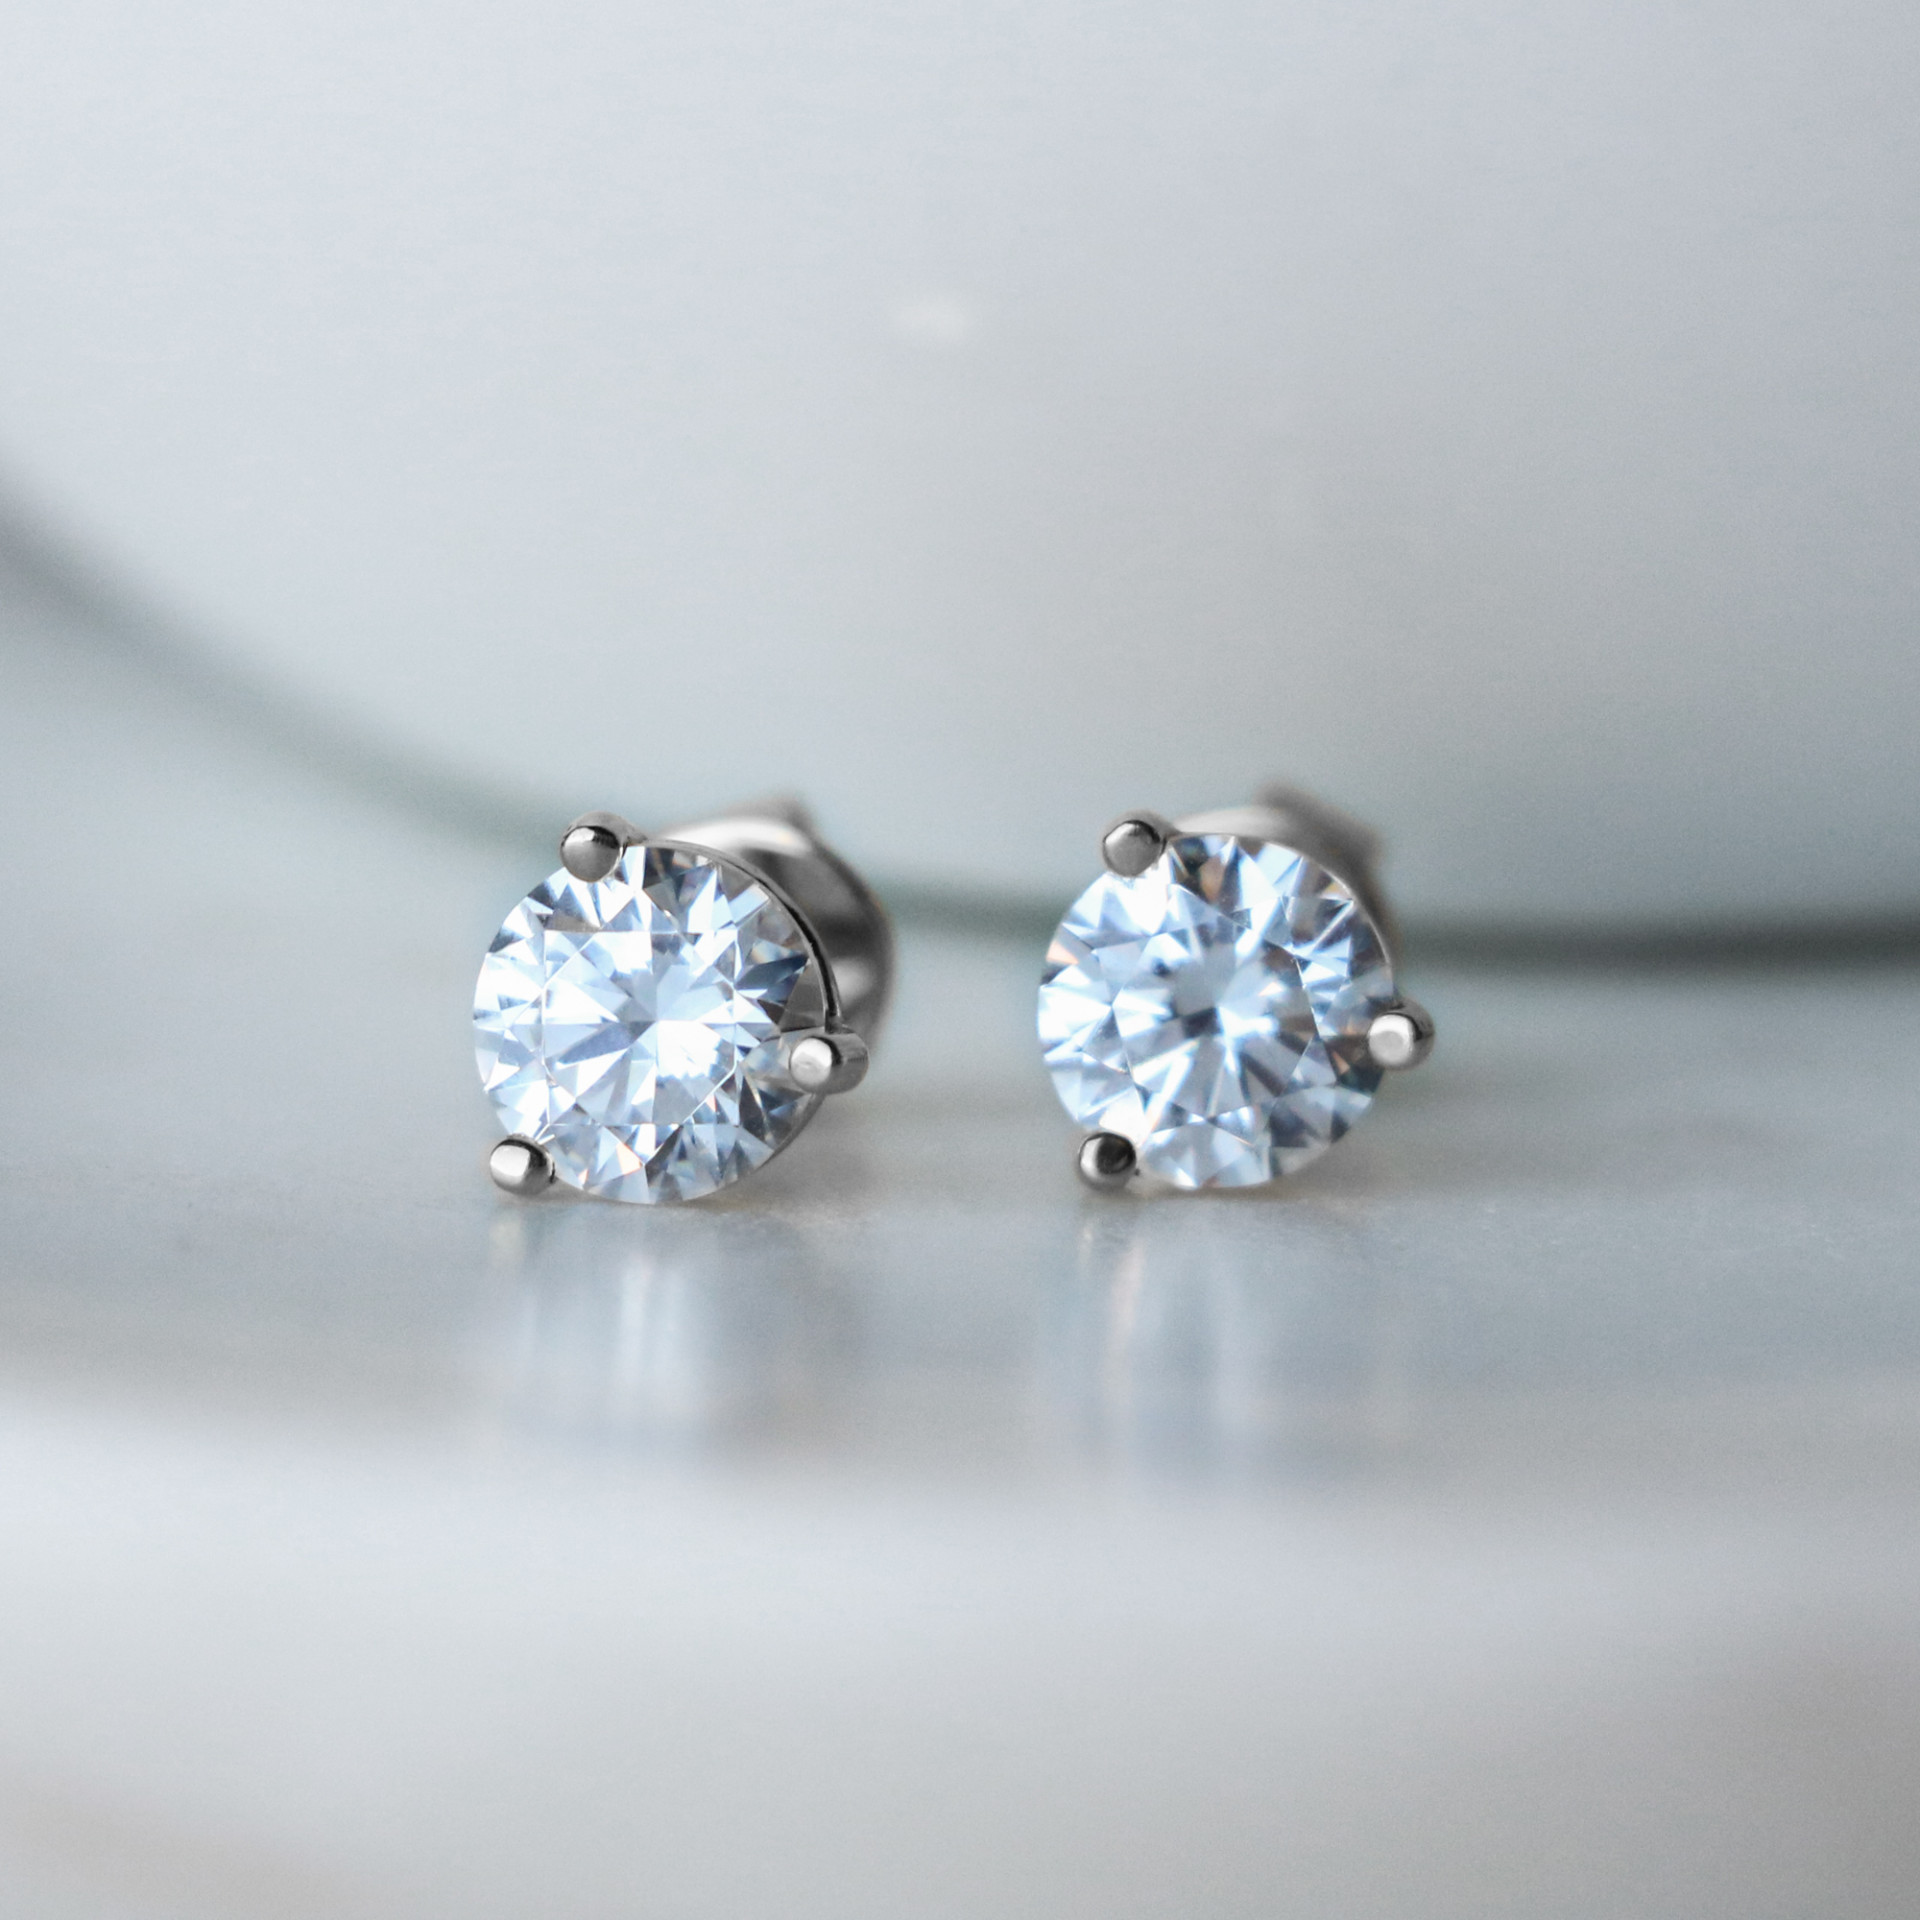 339352e52 Earrings | Classic/Stud | Round Cut Stud Earrings, Tension Back ...